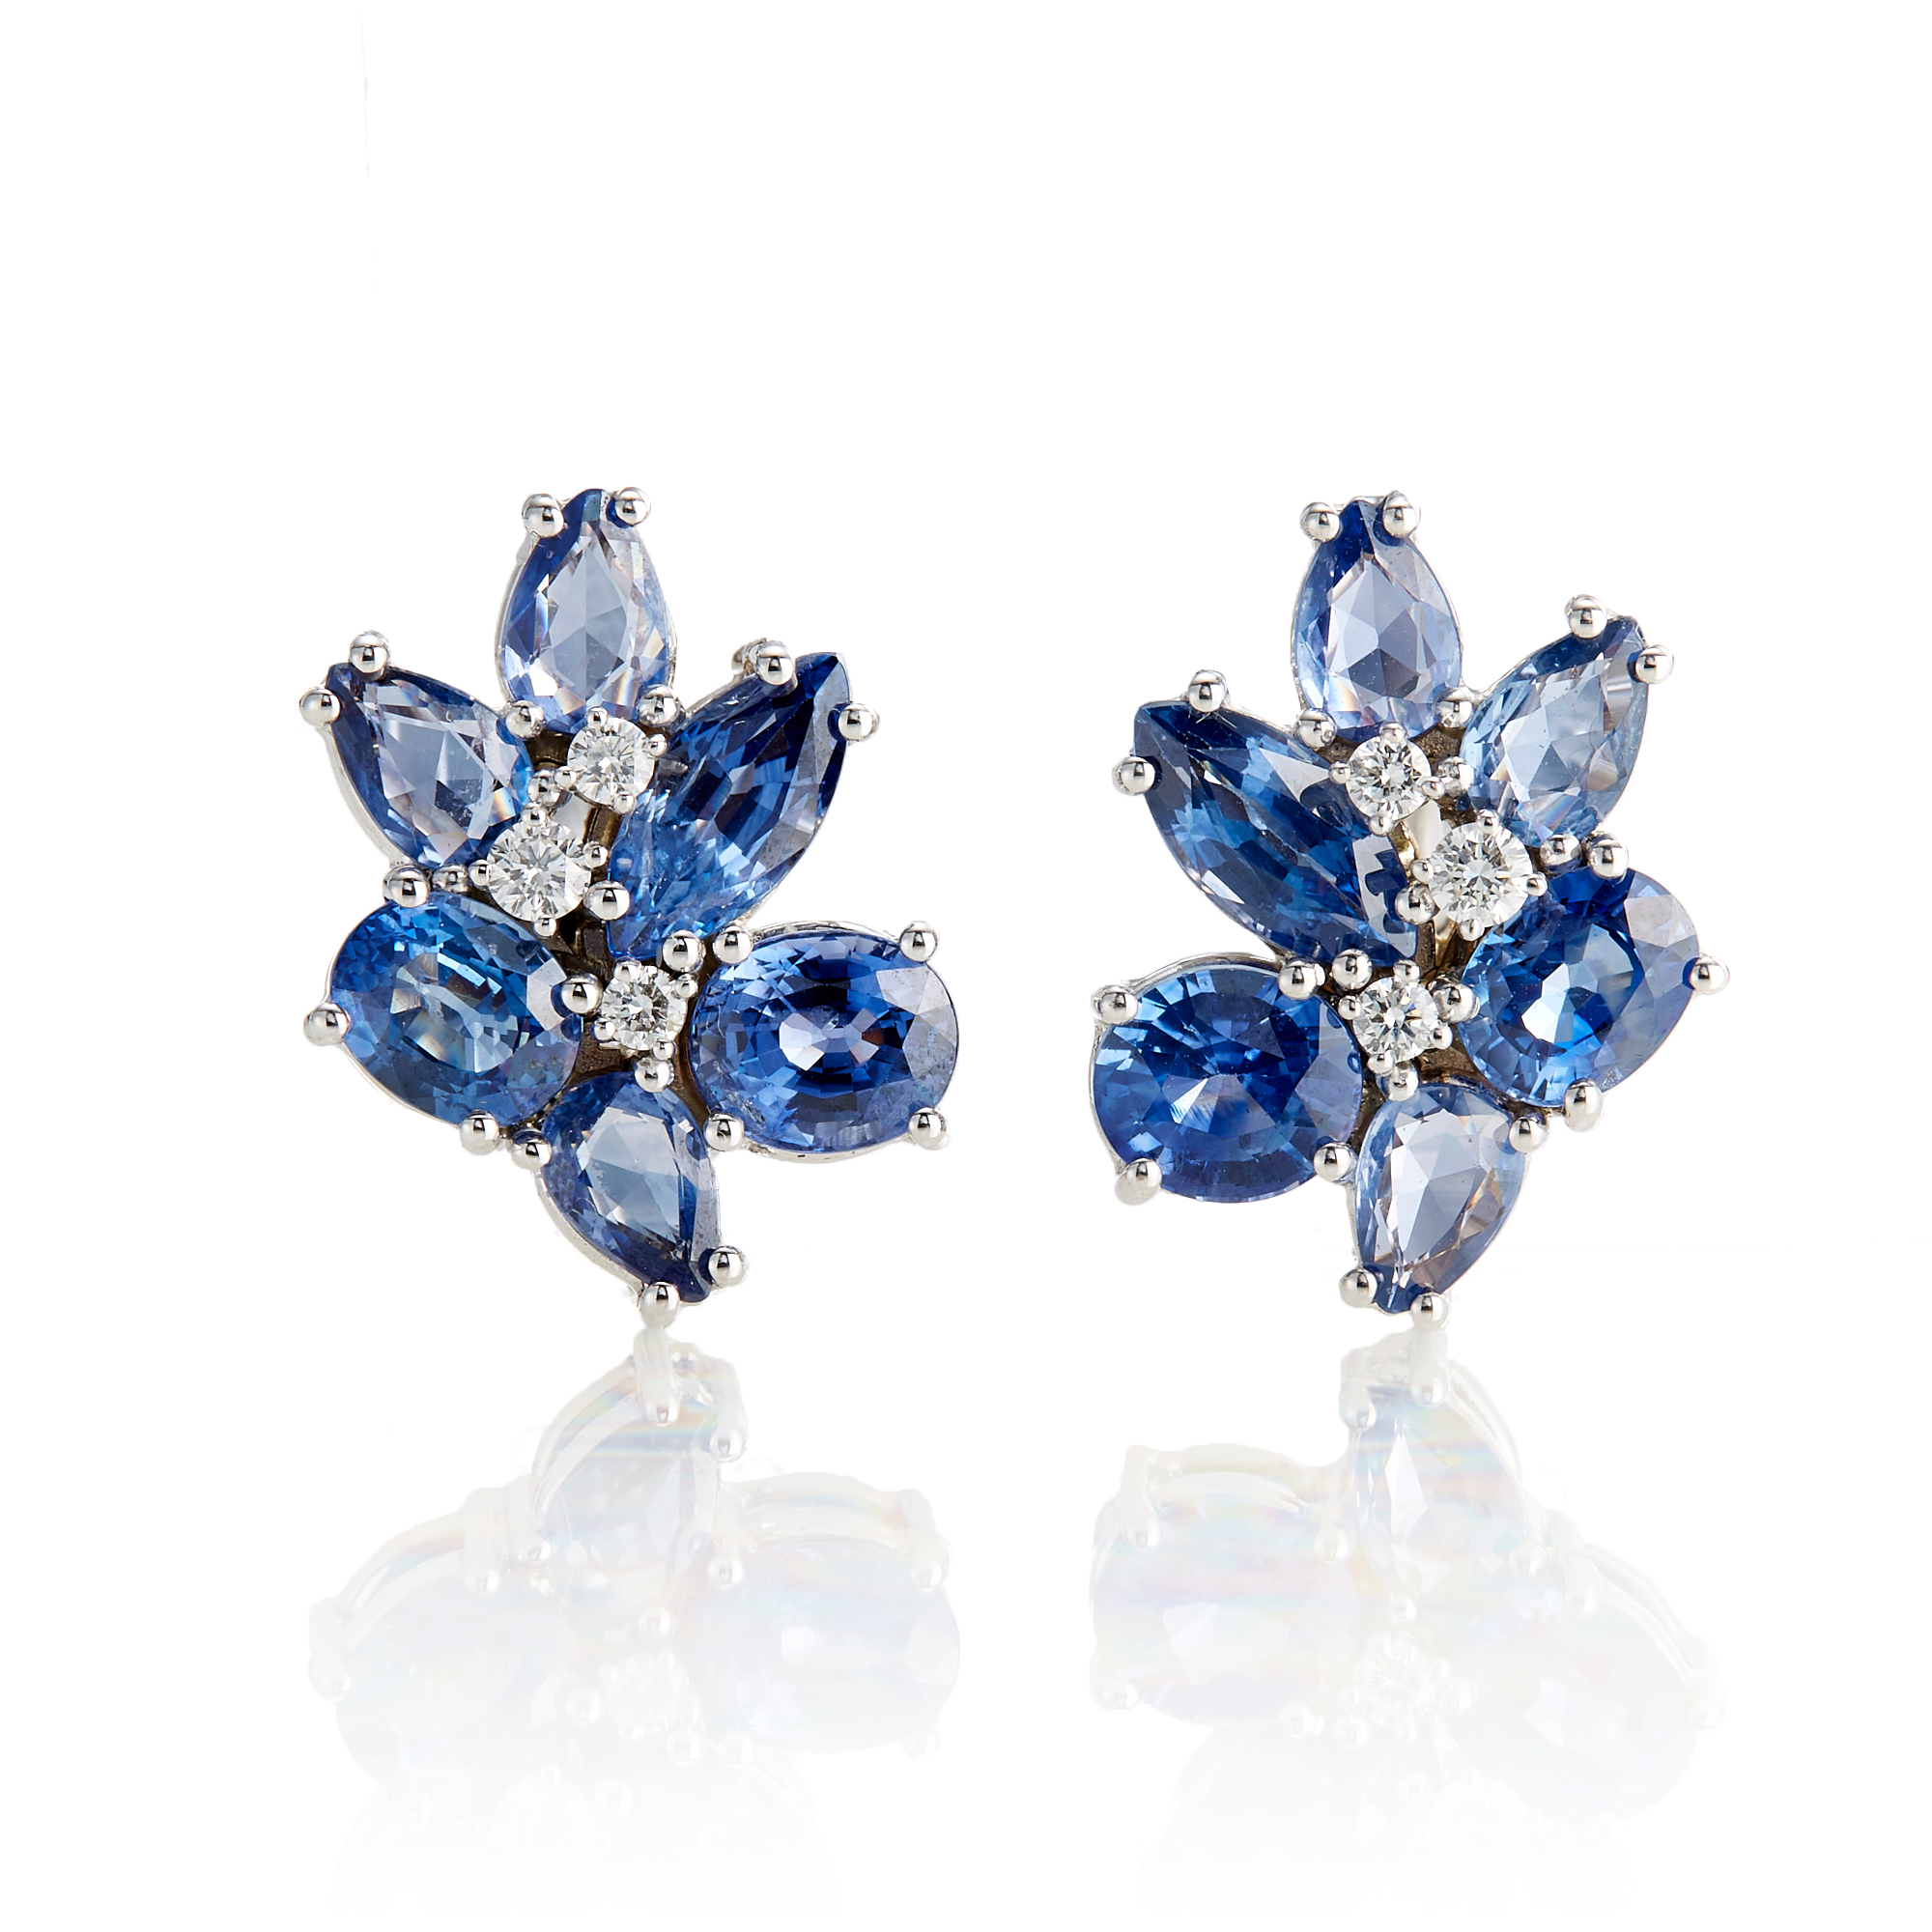 Gump's Sapphire & Diamond Floral Cluster Earrings